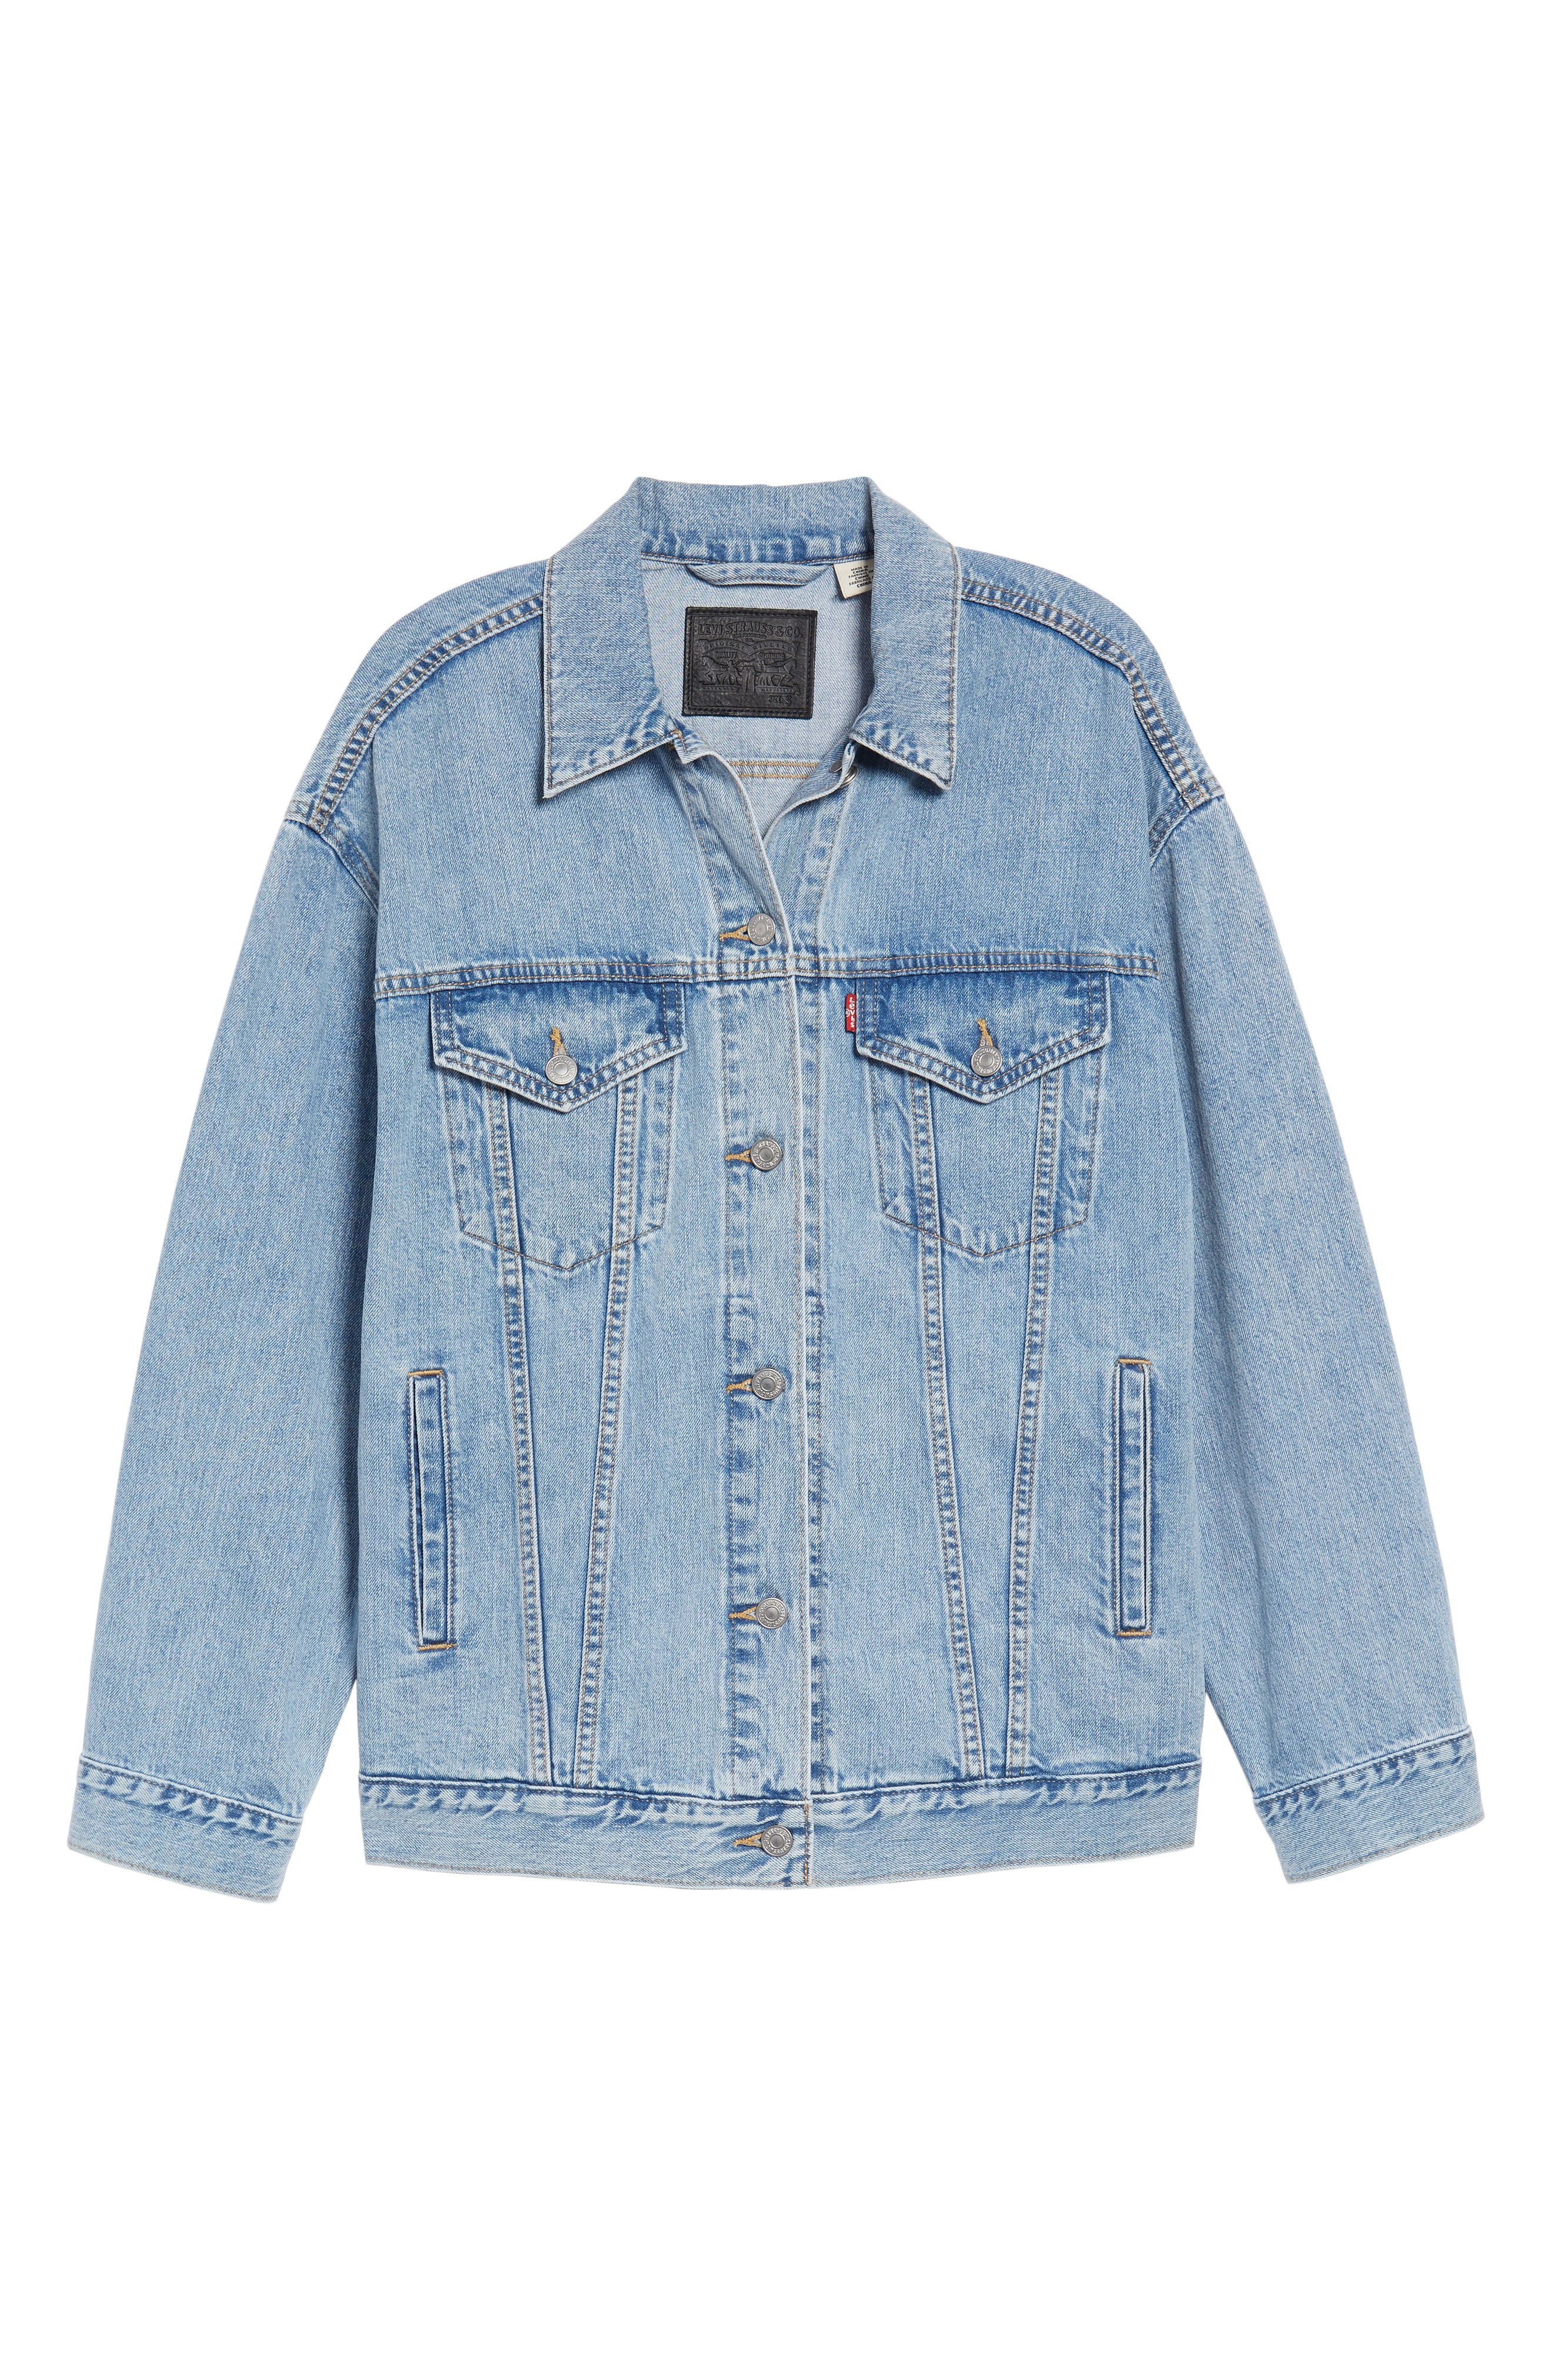 Baggy Trucker Denim Jacket,                             Alternate thumbnail 6, color,                             True Life